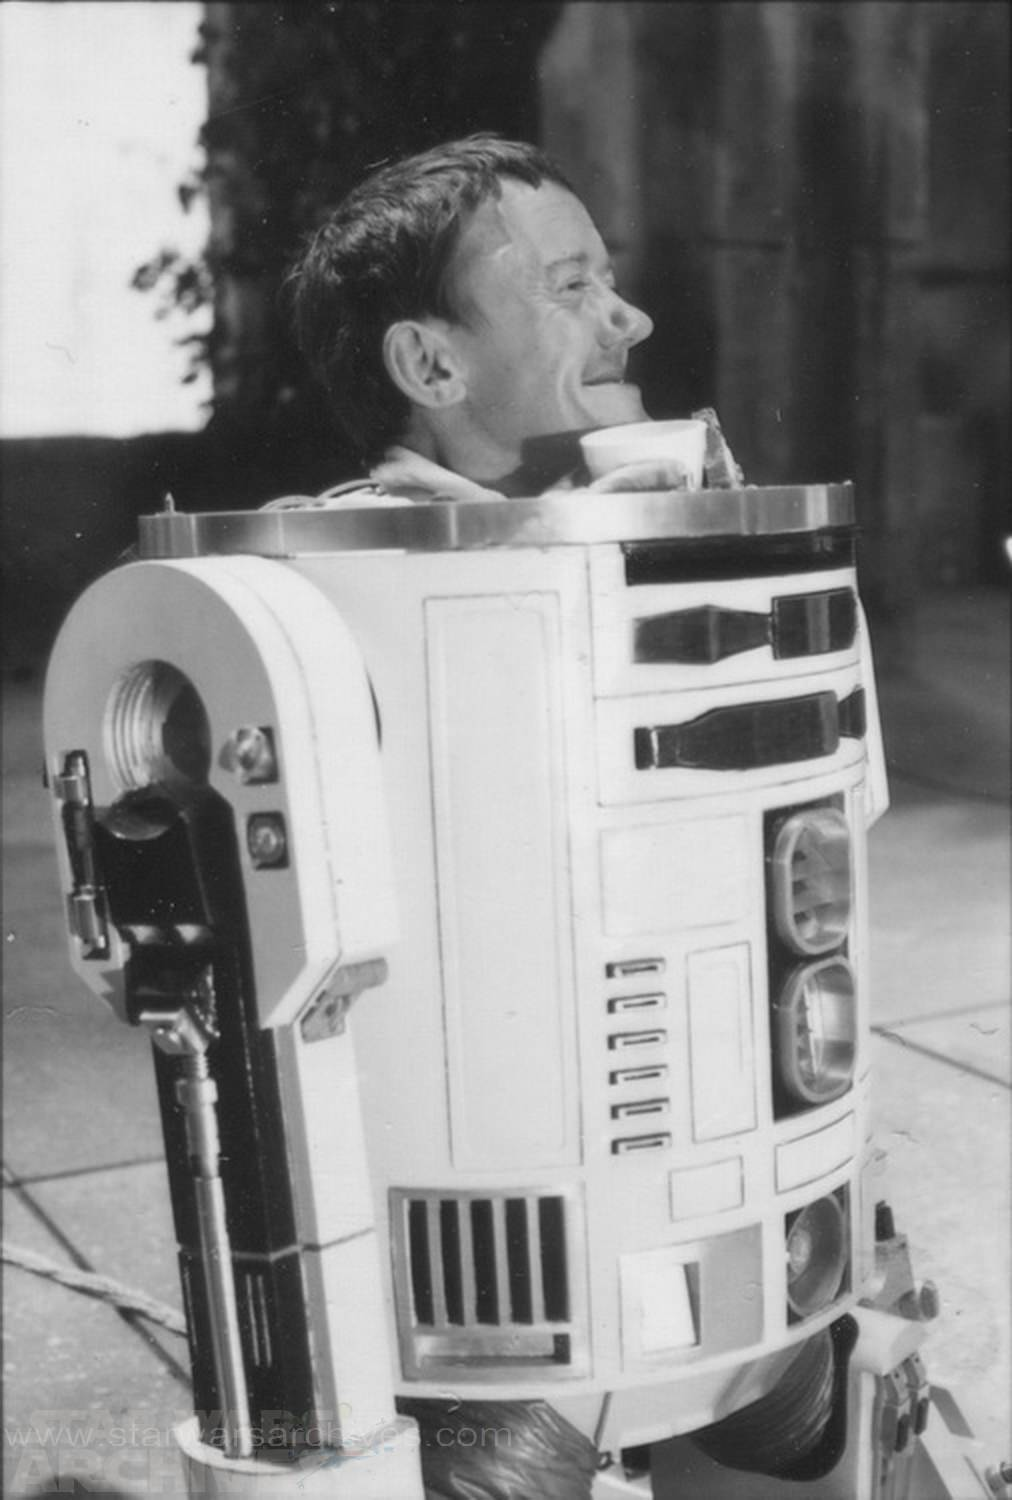 Episode Nothing: Star Wars in the 1970s: RIP Kenny Baker ...